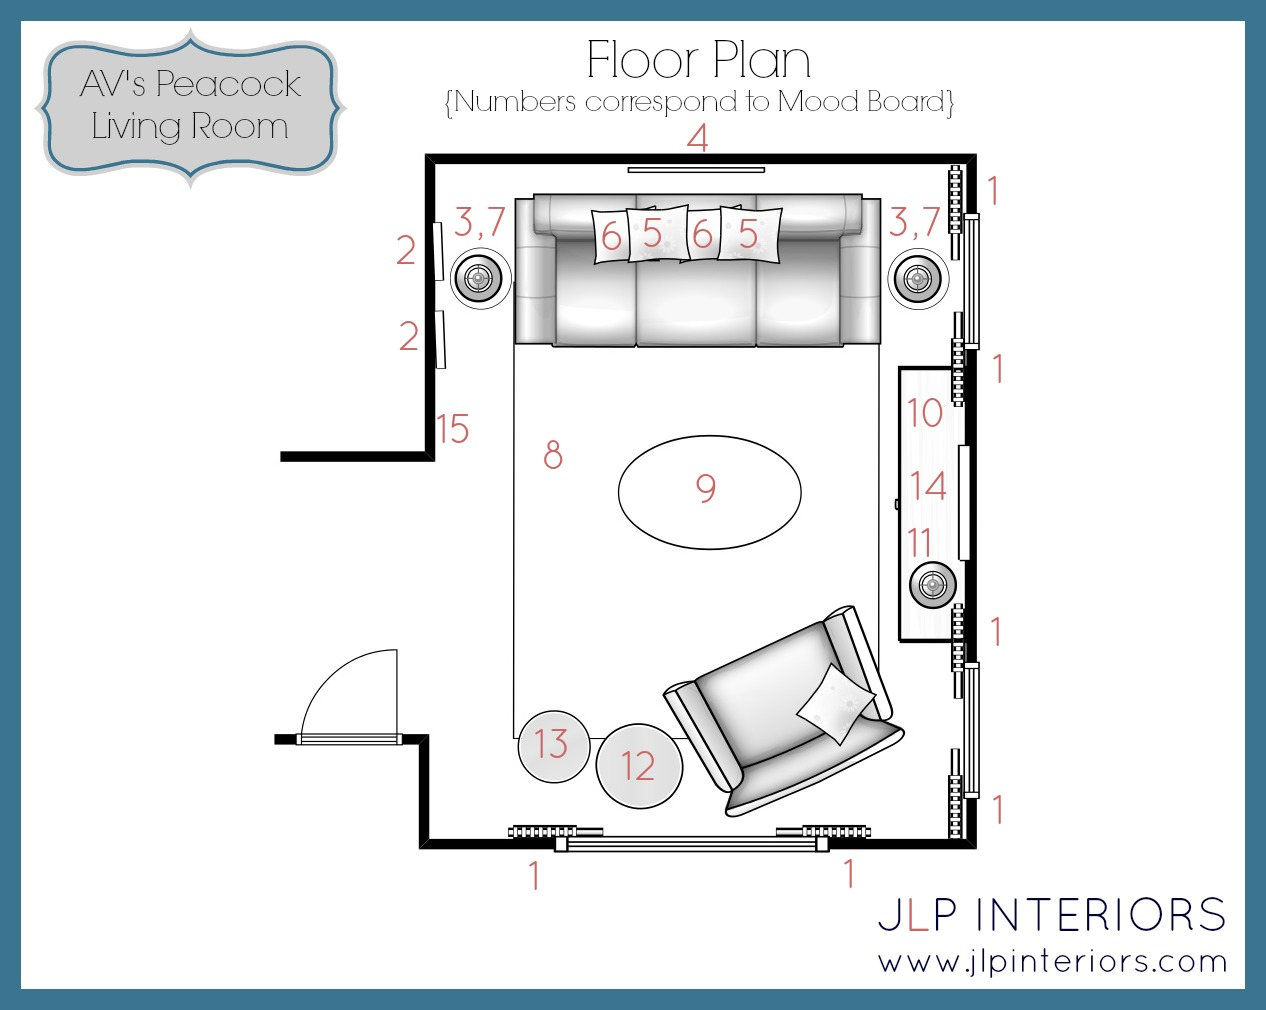 Living Room Floor Plans: Home With Baxter: E-Design: A Peacock